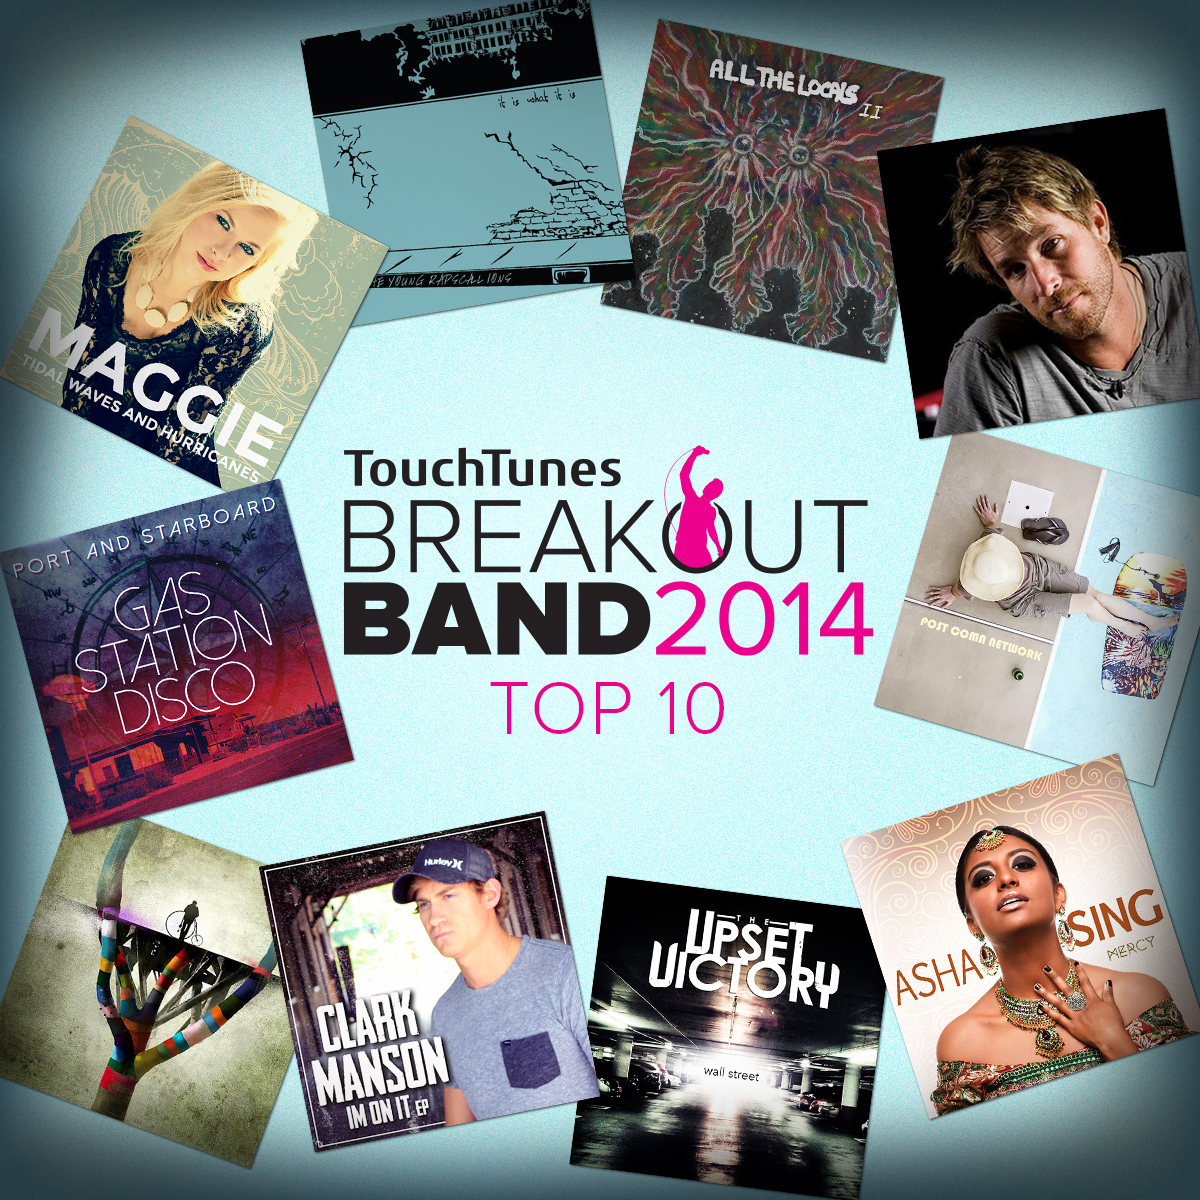 TouchTunes Breakout Band 2014 Competition Releases Top 10 Finalists